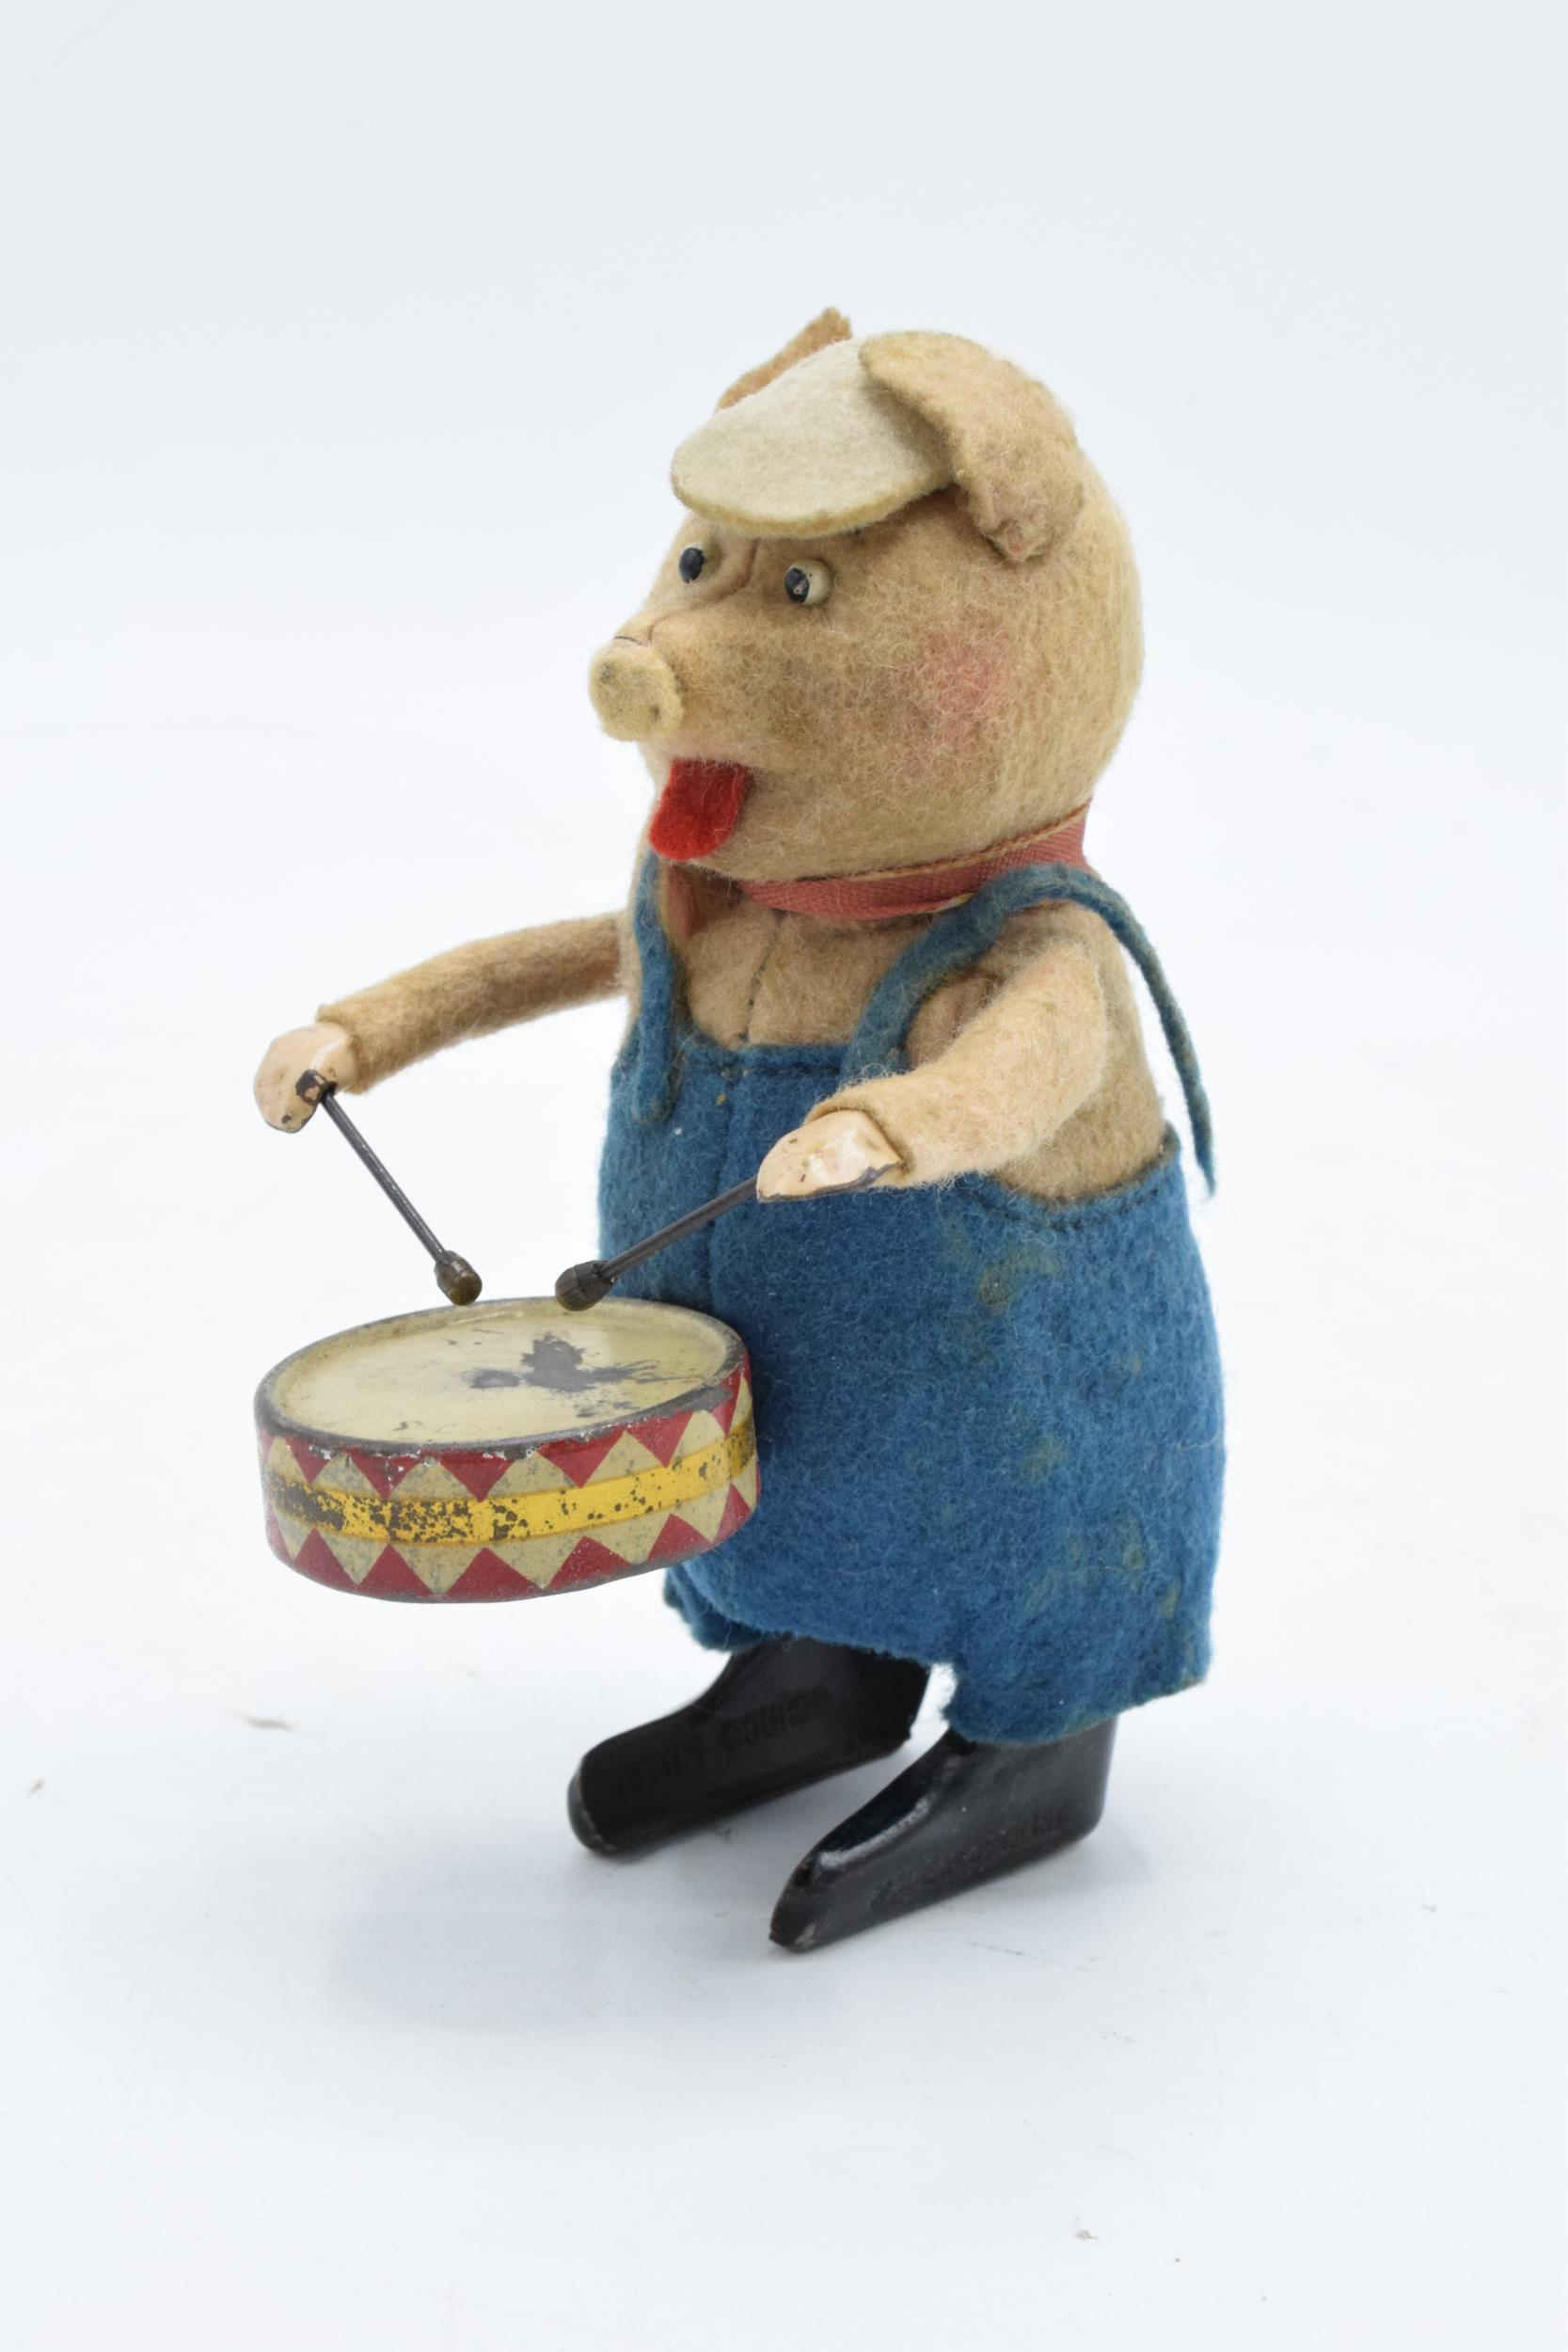 A Schuco circa 1930s clockwork toy figure in the form of a pig with a drum. Based on the Three